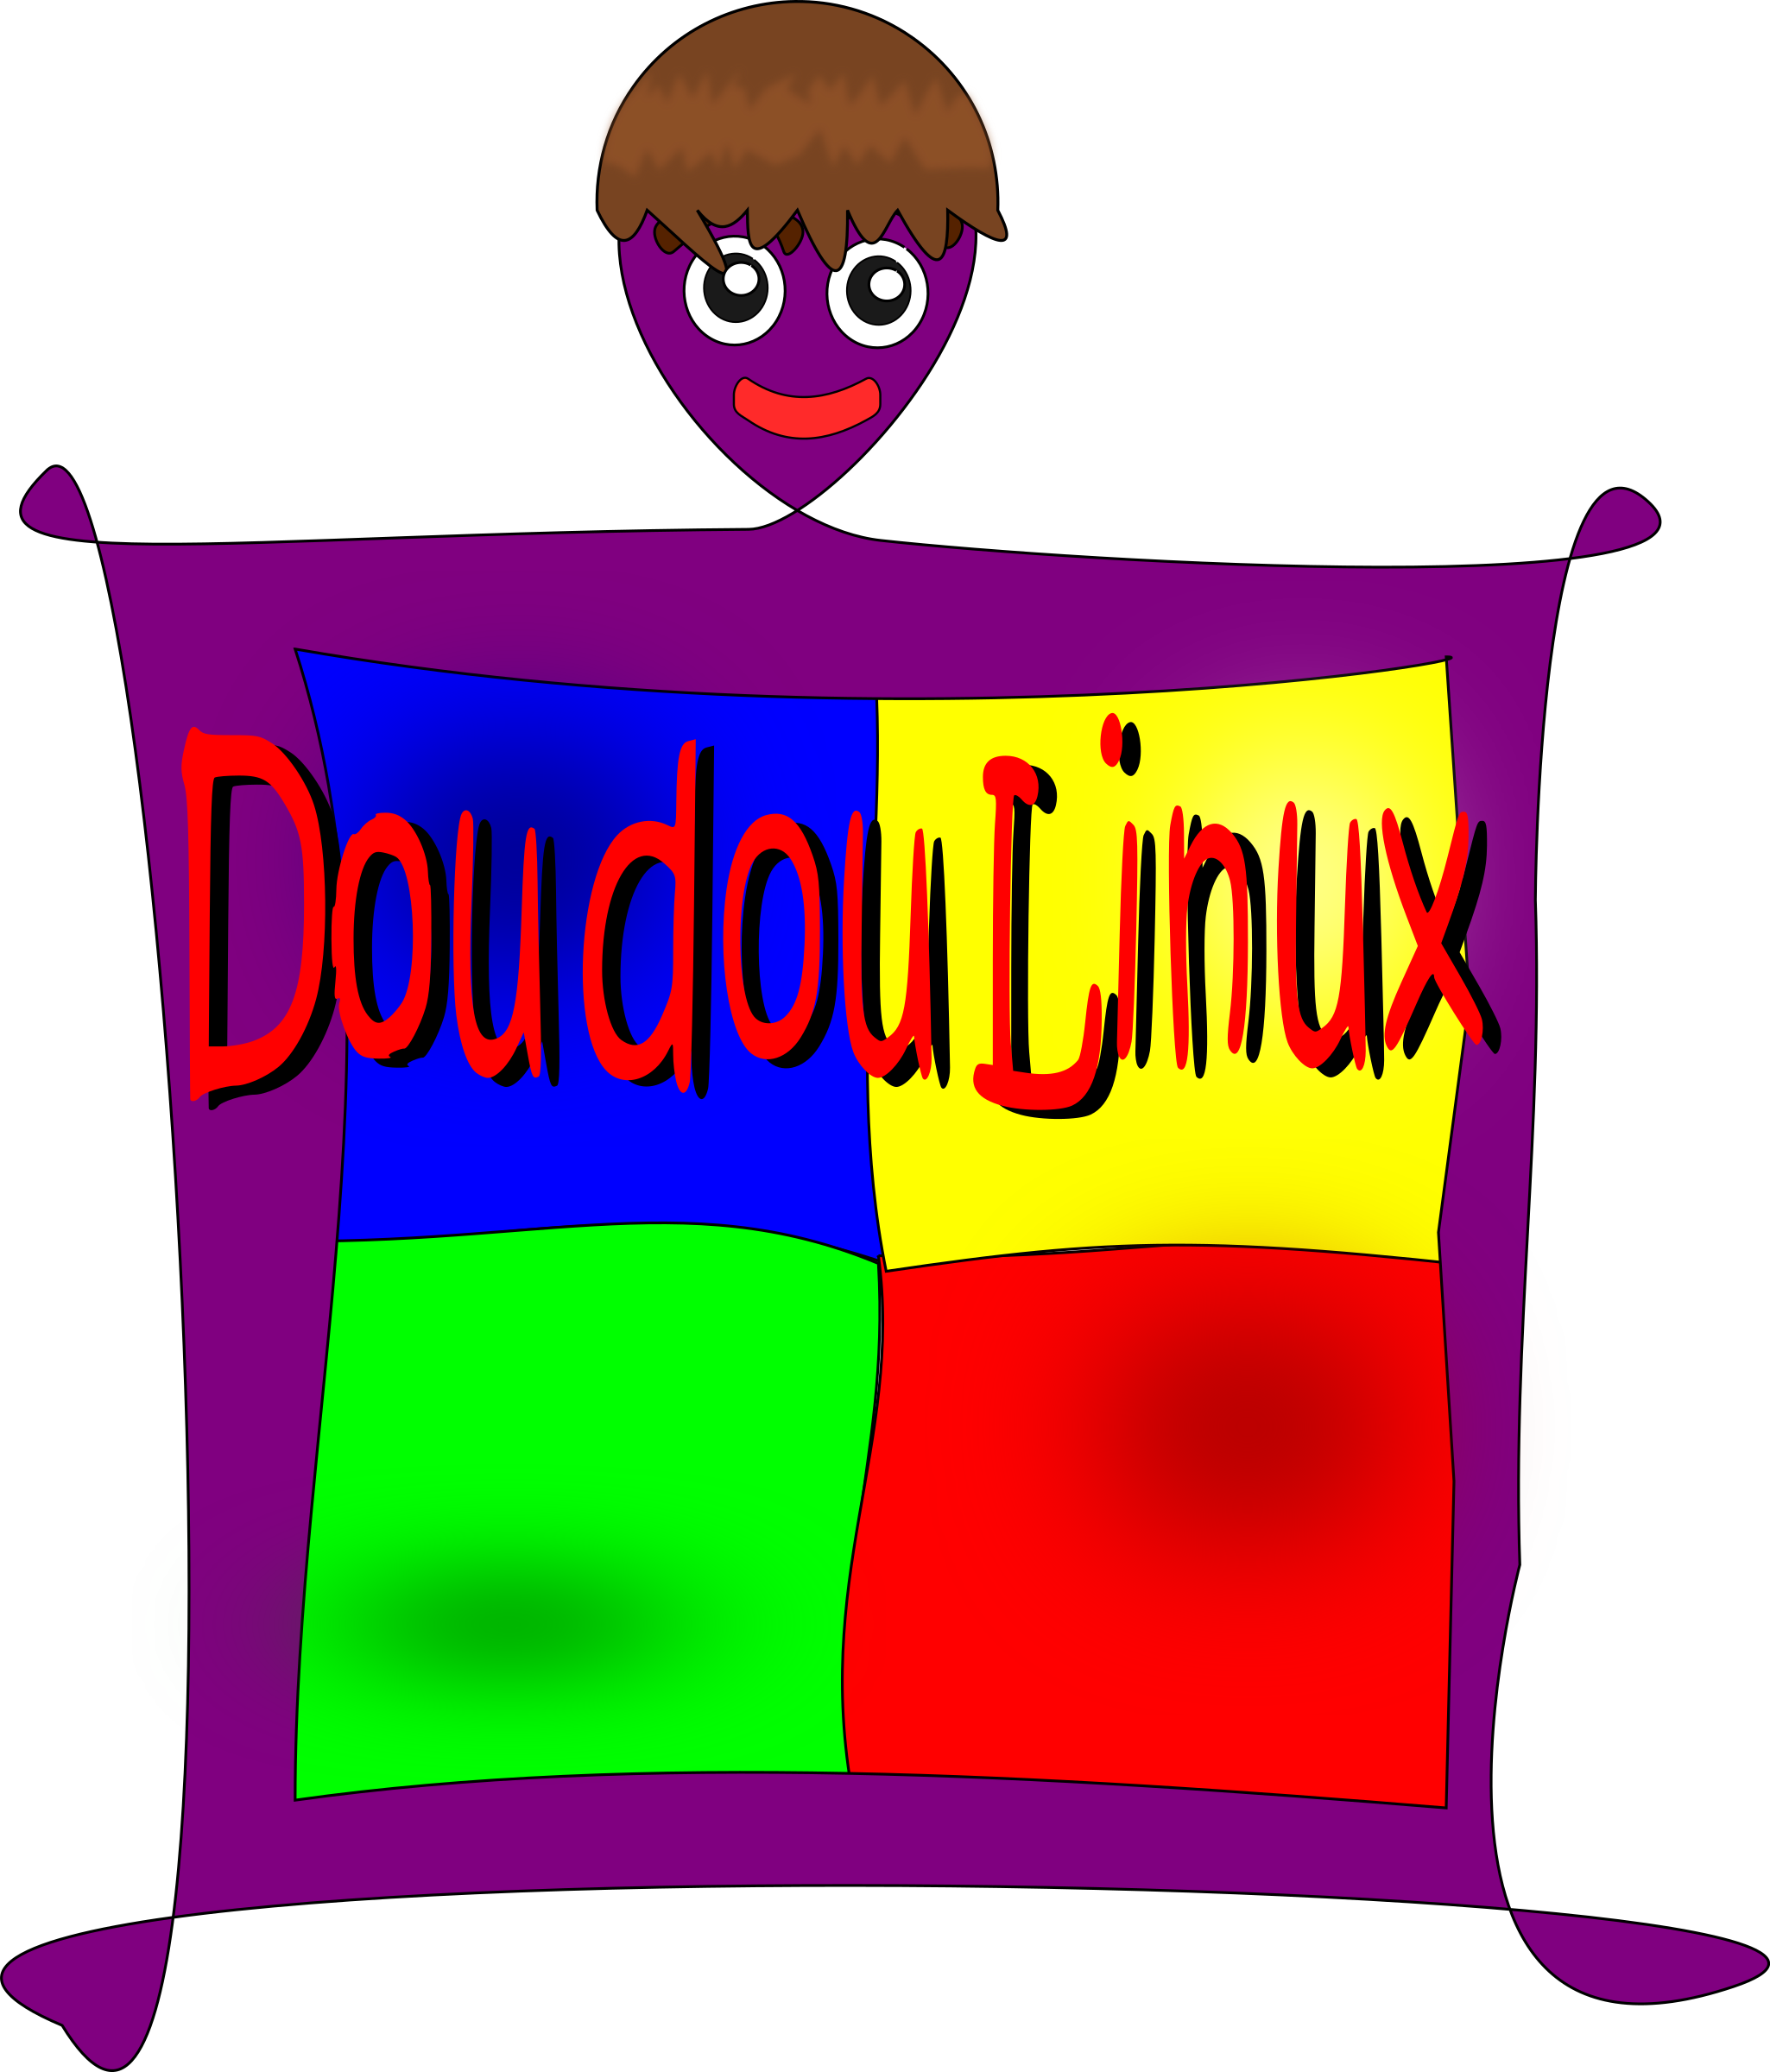 doudoulinux by pauthonic